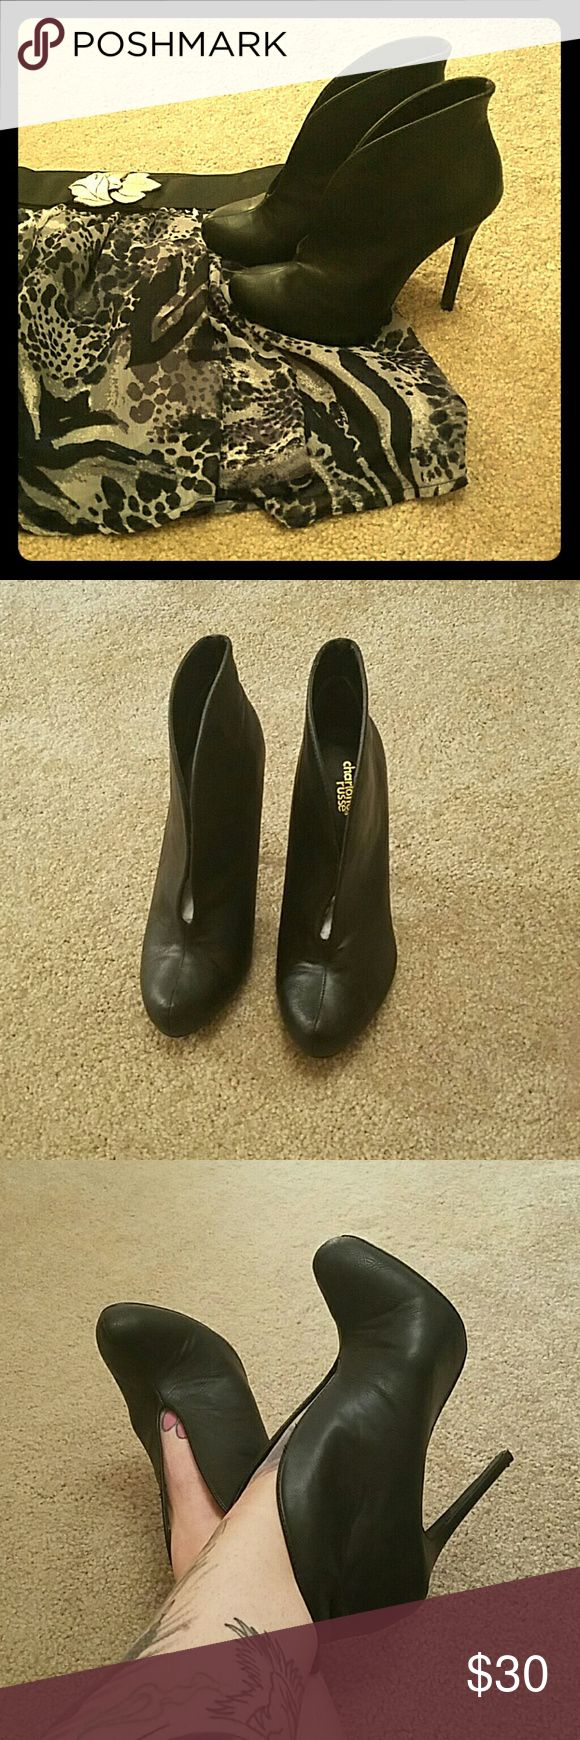 Charlotte Russe Deep V Sexy Black Booties In perfect condition!! Charlotte Russe brand deep V skillet over booties. Super slimming effect on legs, great with pants or skirts. Worn once for about an hour. Charlotte Russe Shoes Heeled Boots